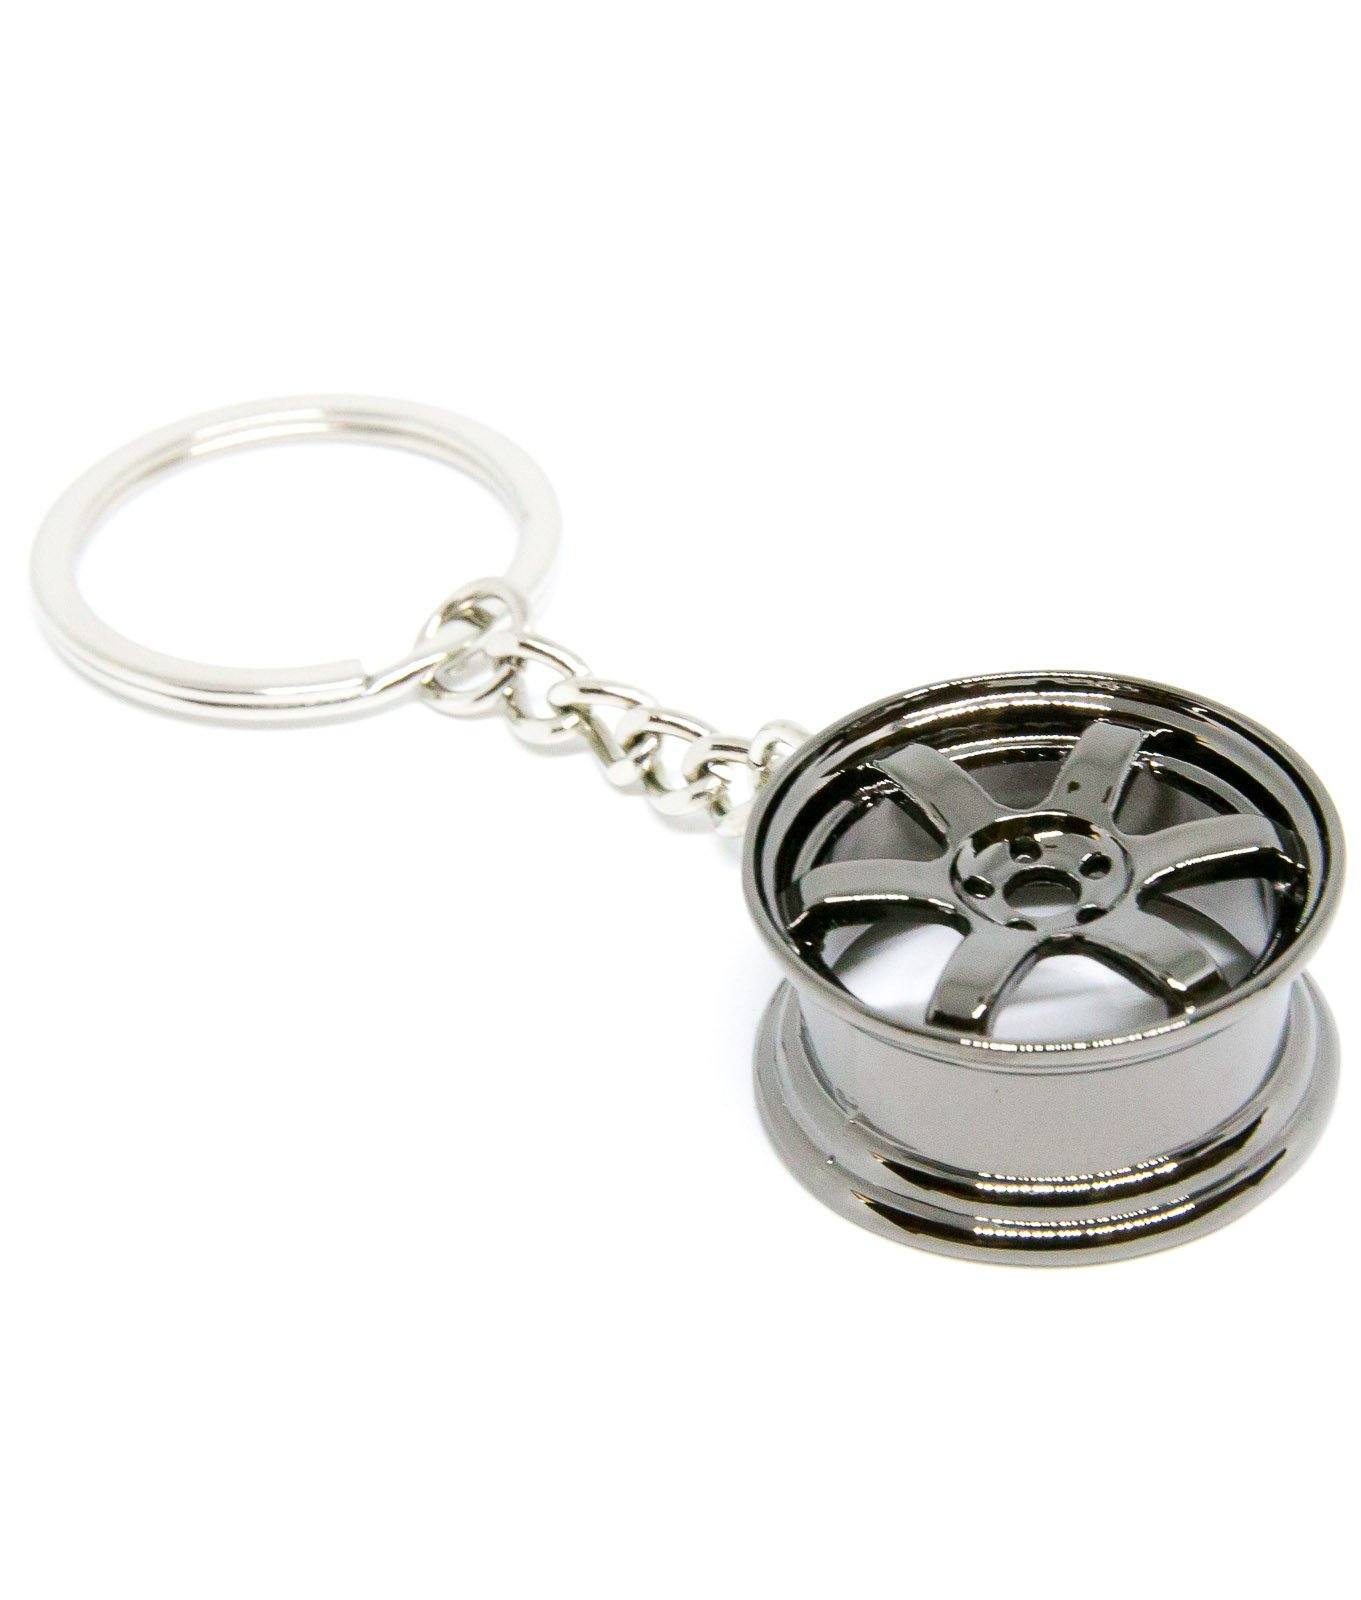 Volk TE37 Key Ring